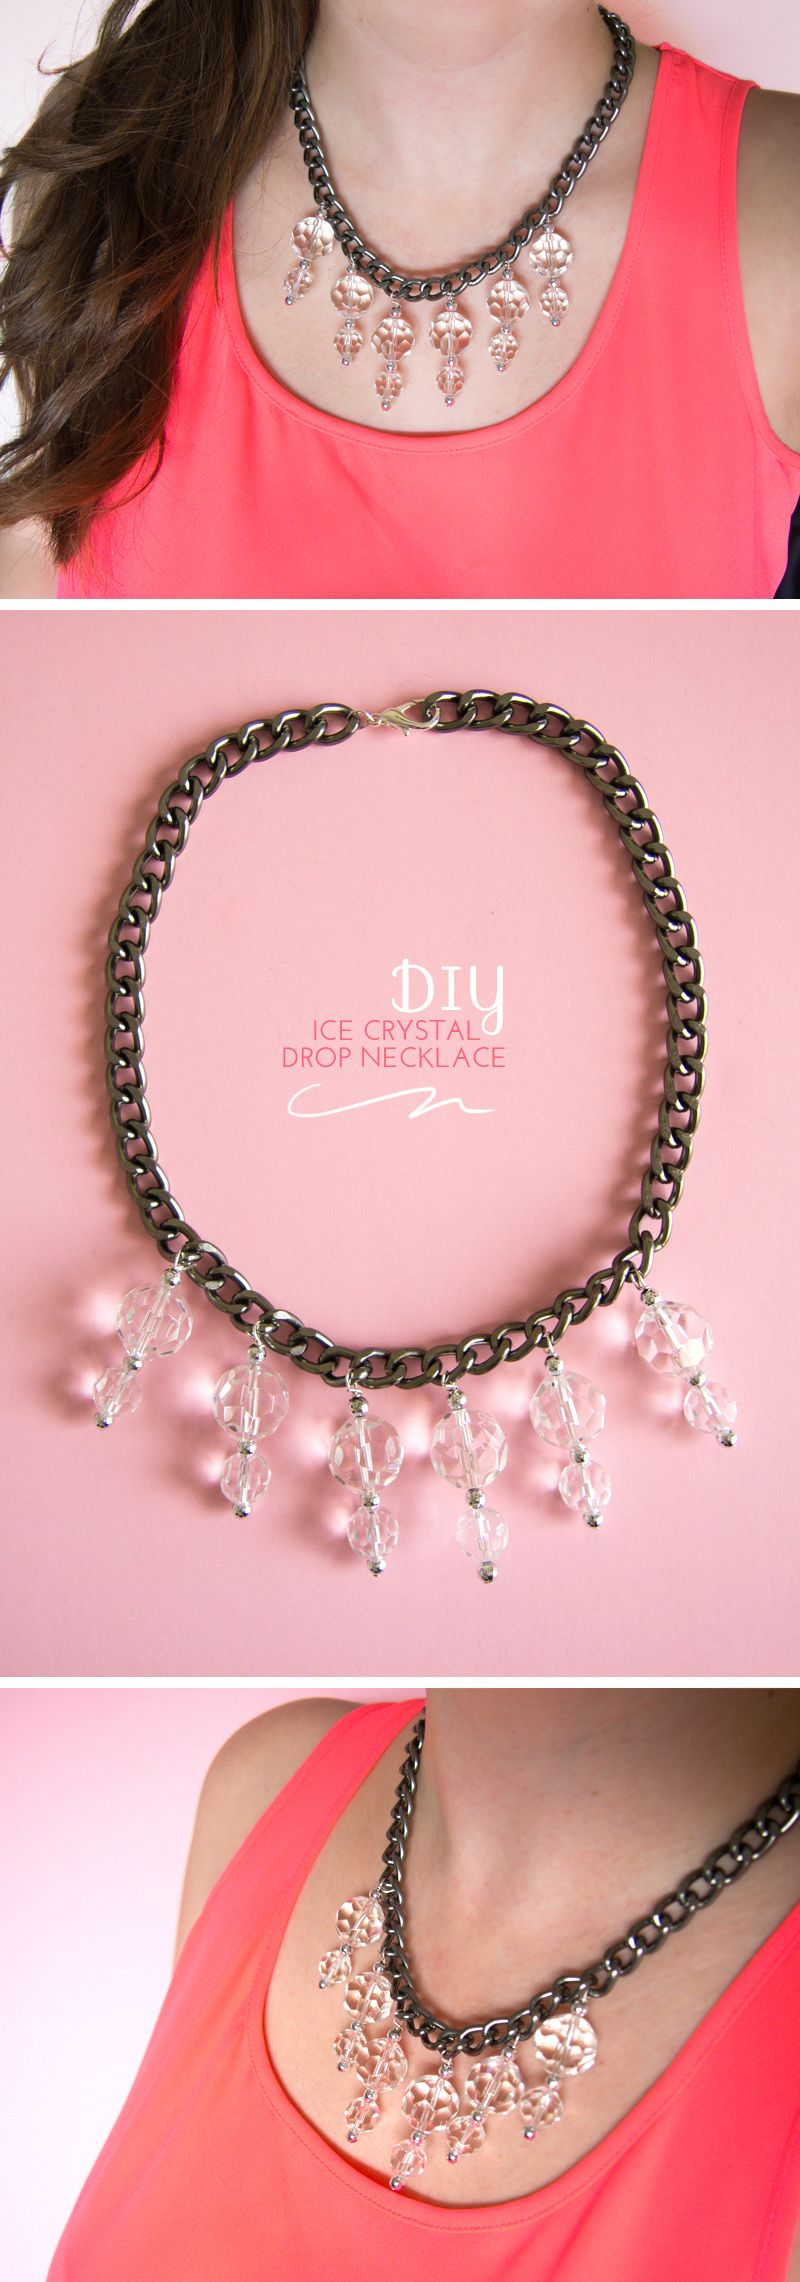 diy // ice crystal drop necklace #diy #doityourself #howto